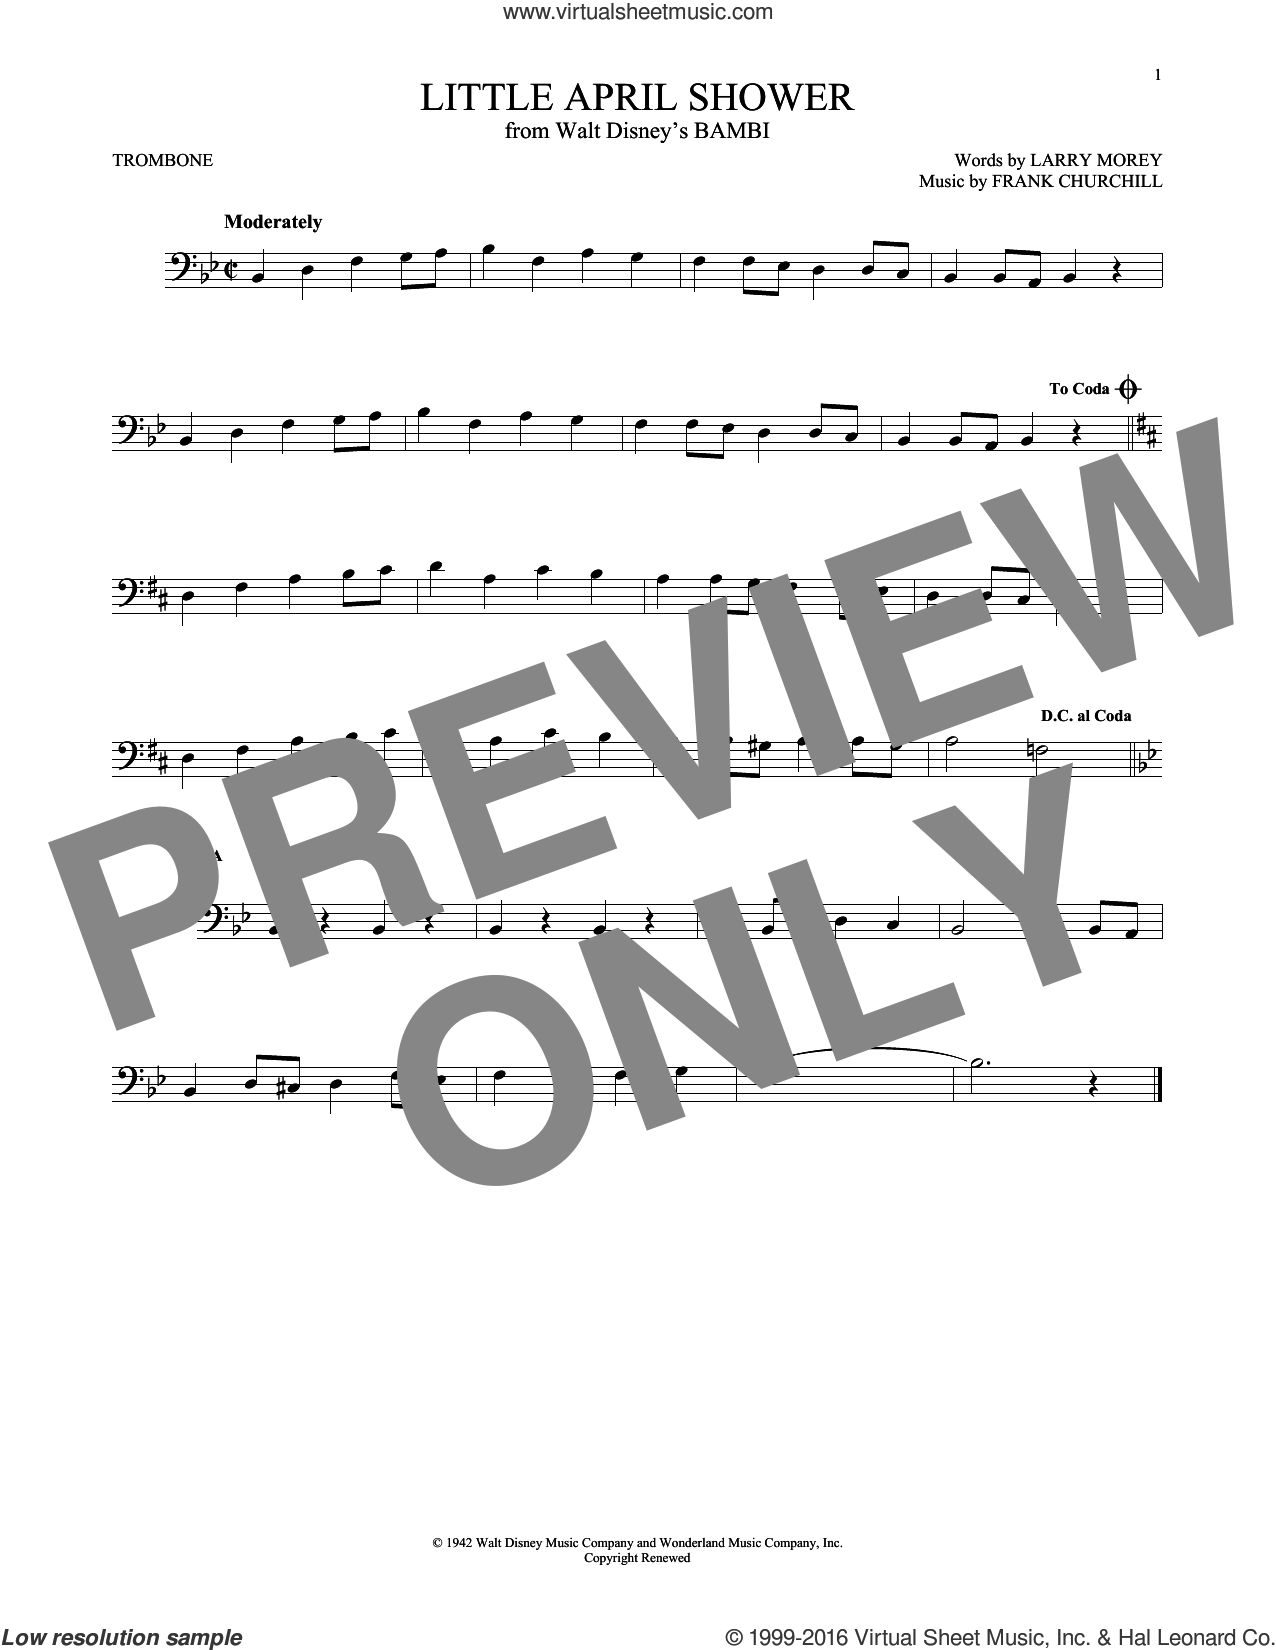 Little April Shower sheet music for trombone solo by Larry Morey and Frank Churchill, intermediate skill level